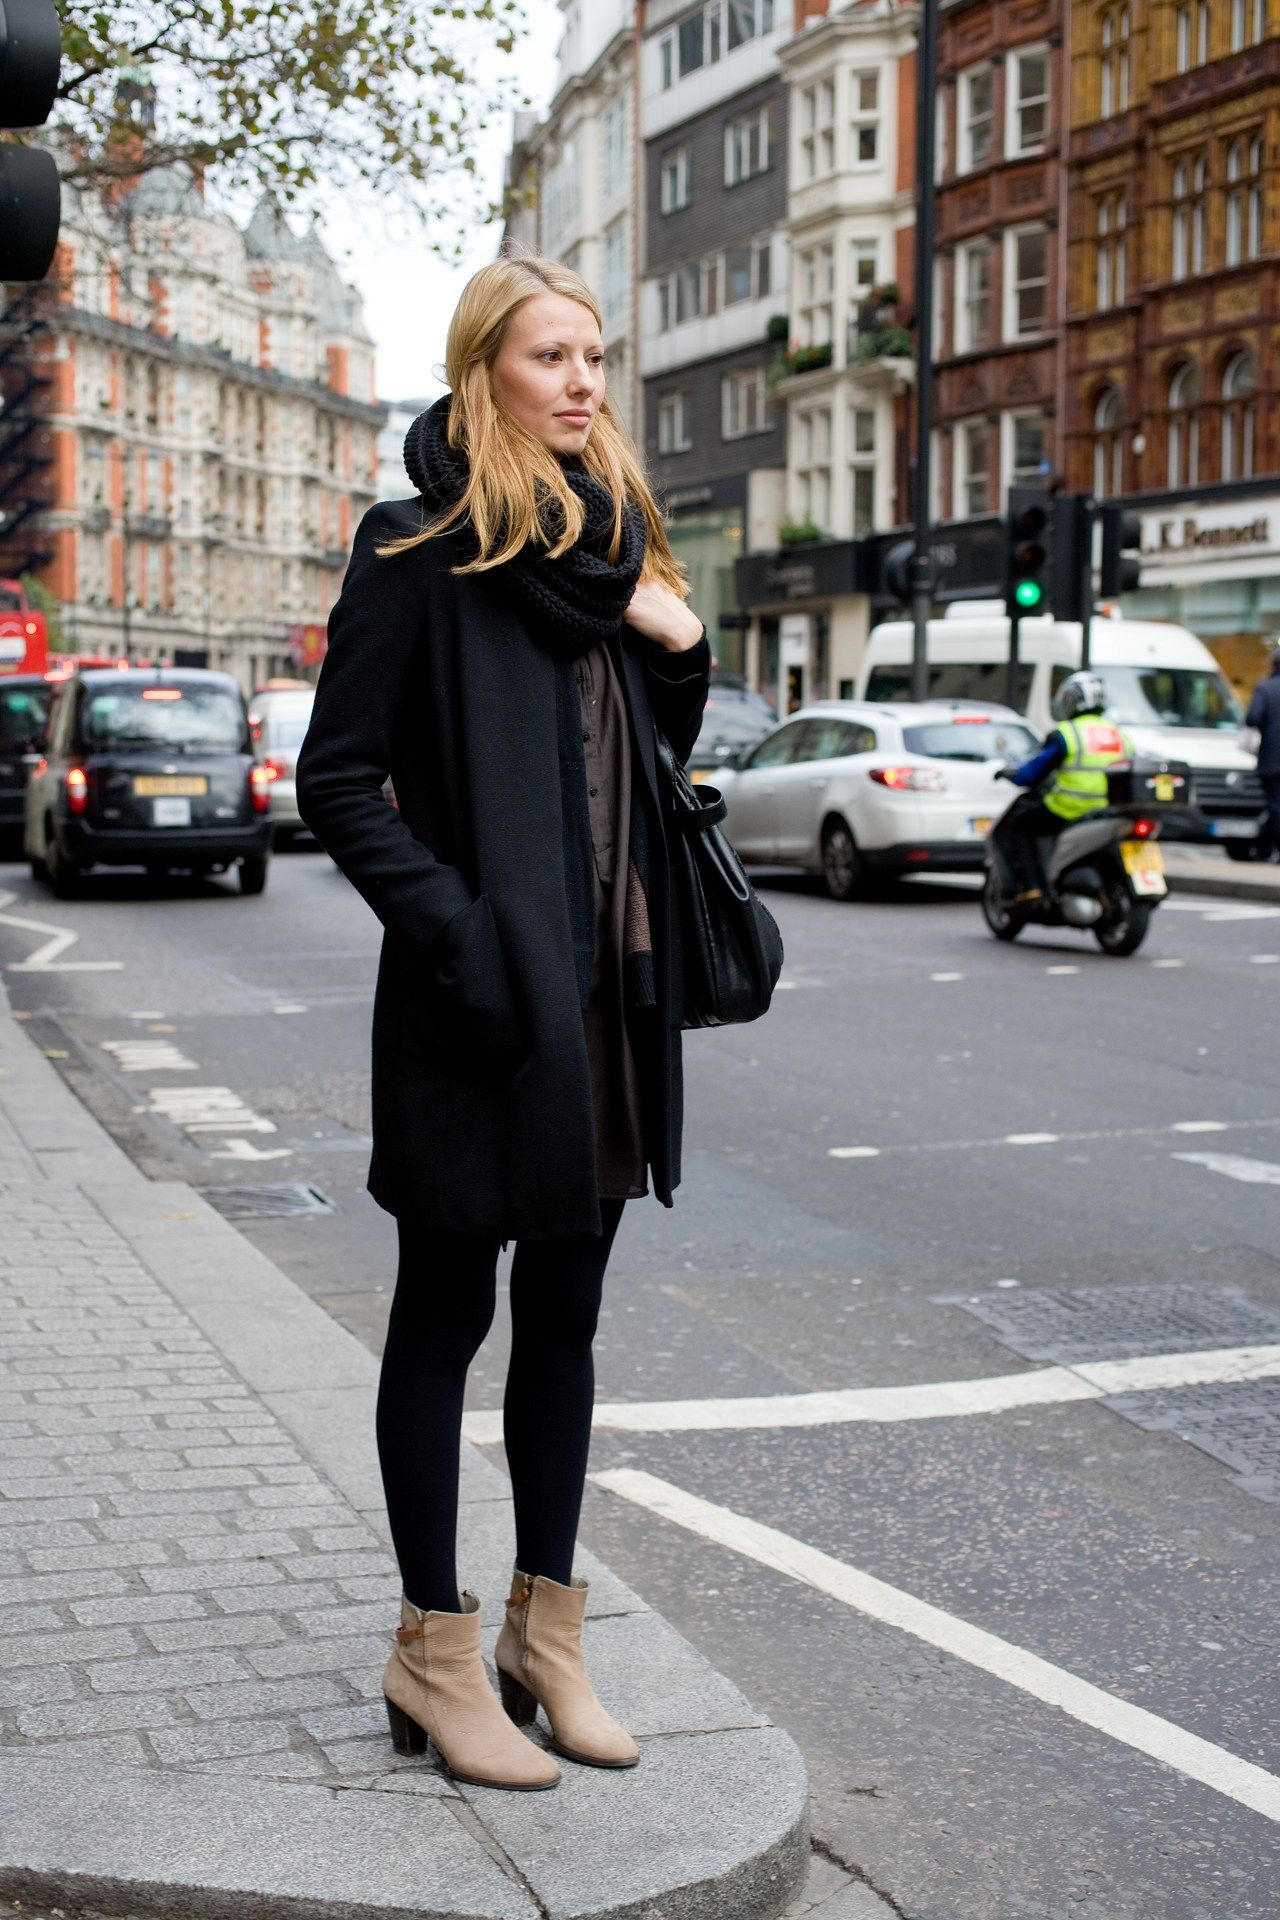 eb4bdaa2803 Street Chic - Street Style Fashion Blog  amp  Real-Life Looks (Vogue.